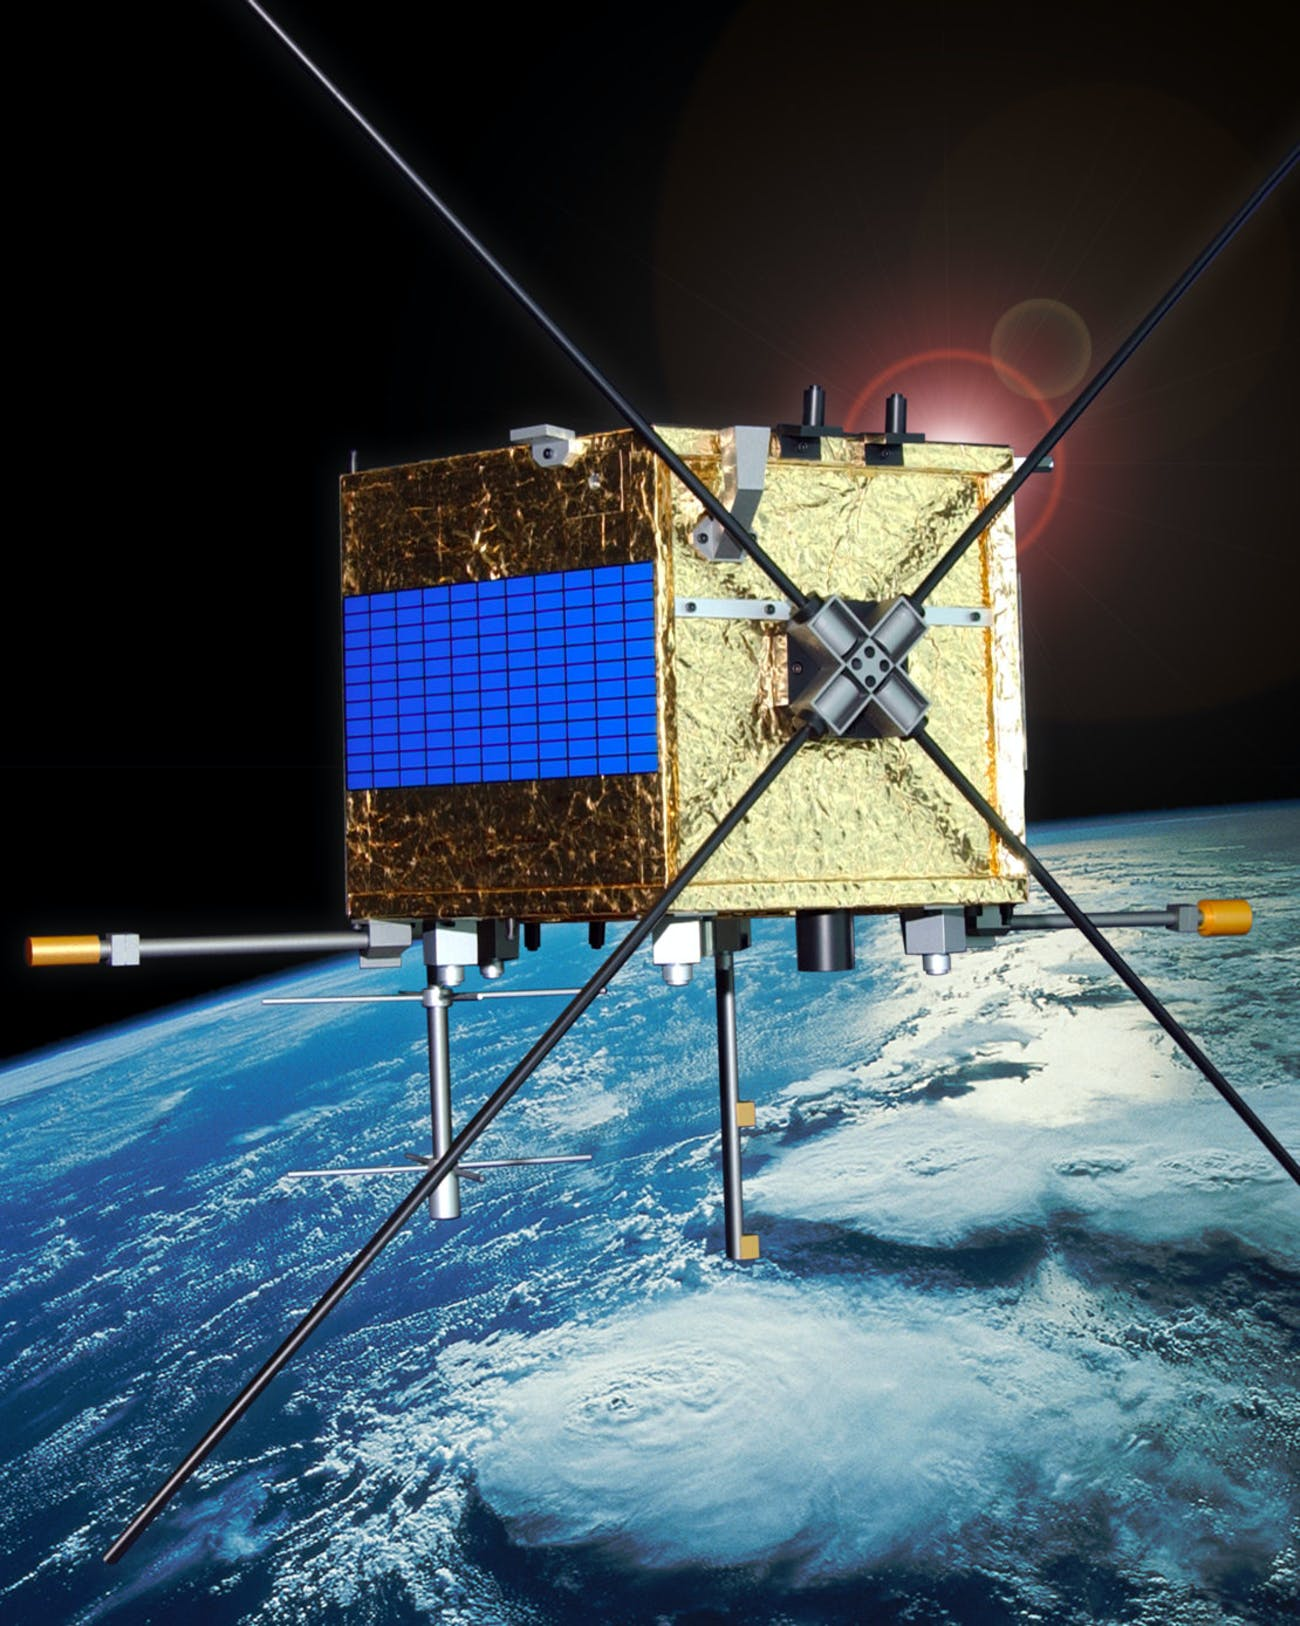 Canada's Cassiope satellite carries e-POP, which consists of eight instruments to provide information on Earth's ionosphere, thermosphere and magnetosphere for a better understanding of space weather.